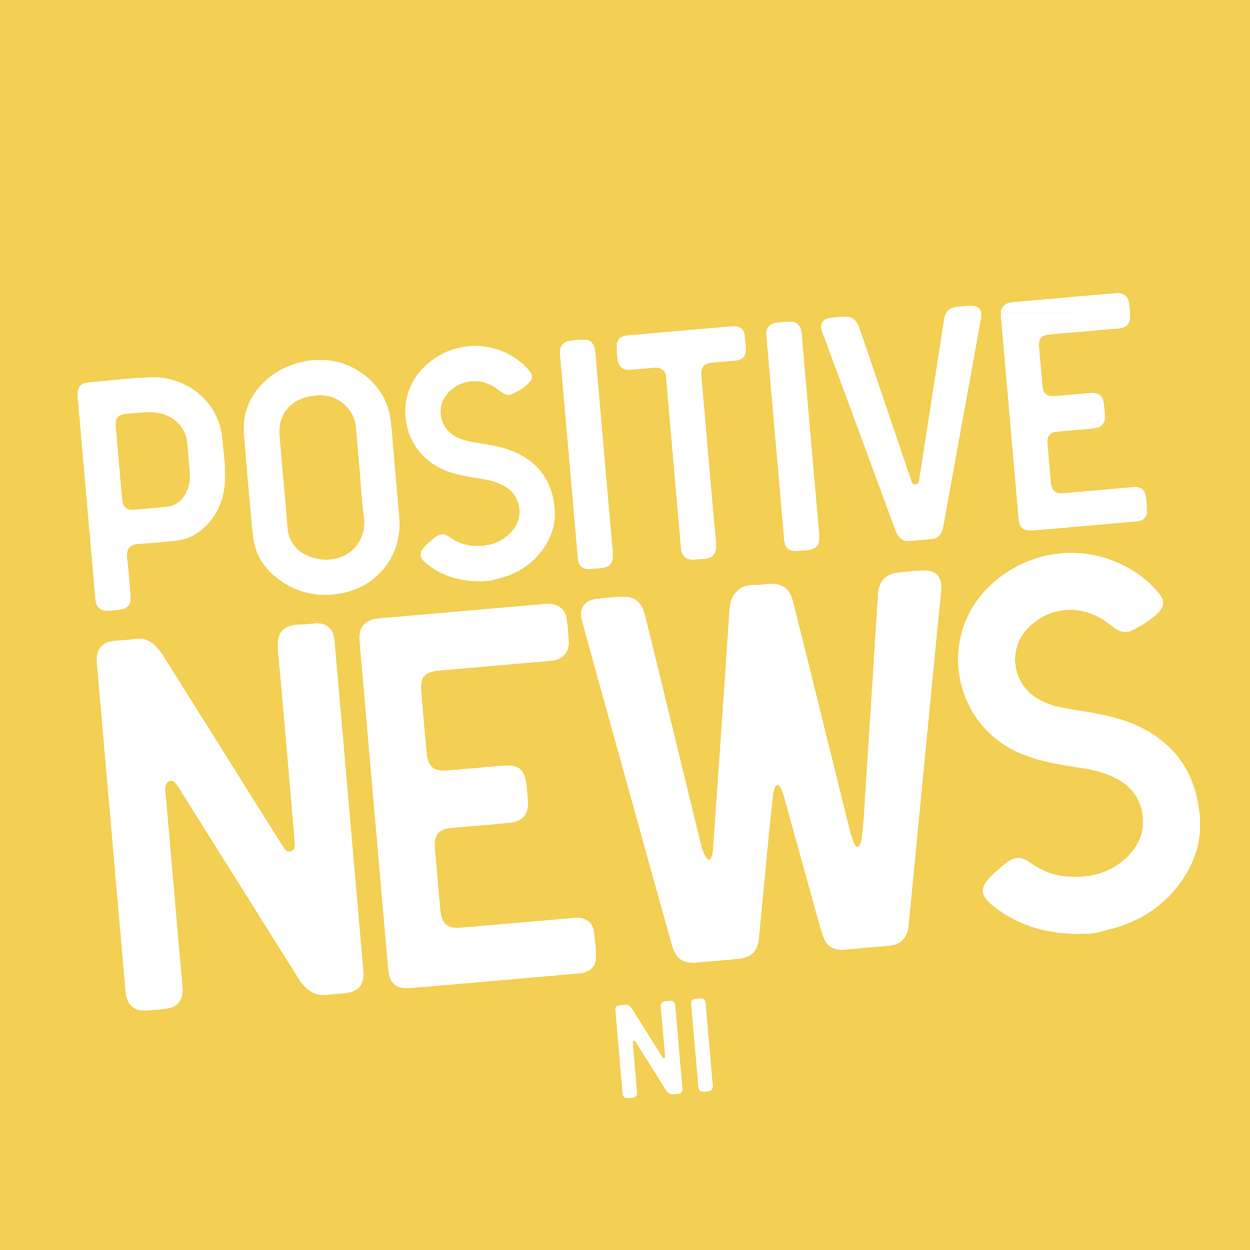 positive news, positivity, positive news ni, northern ireland, positive news northern ireland, news group